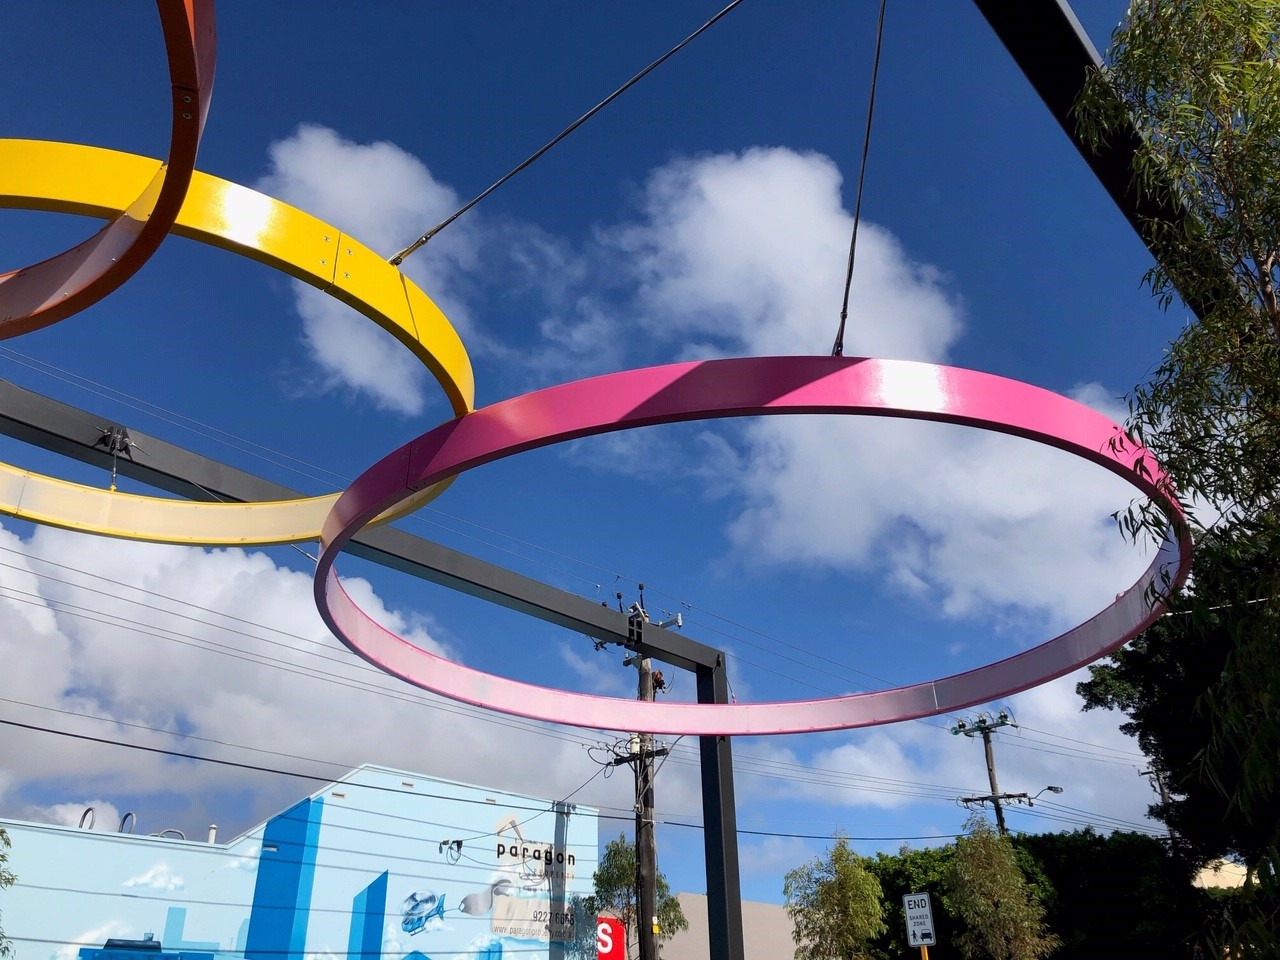 DENMAC rings at the North Perth Common Piazza